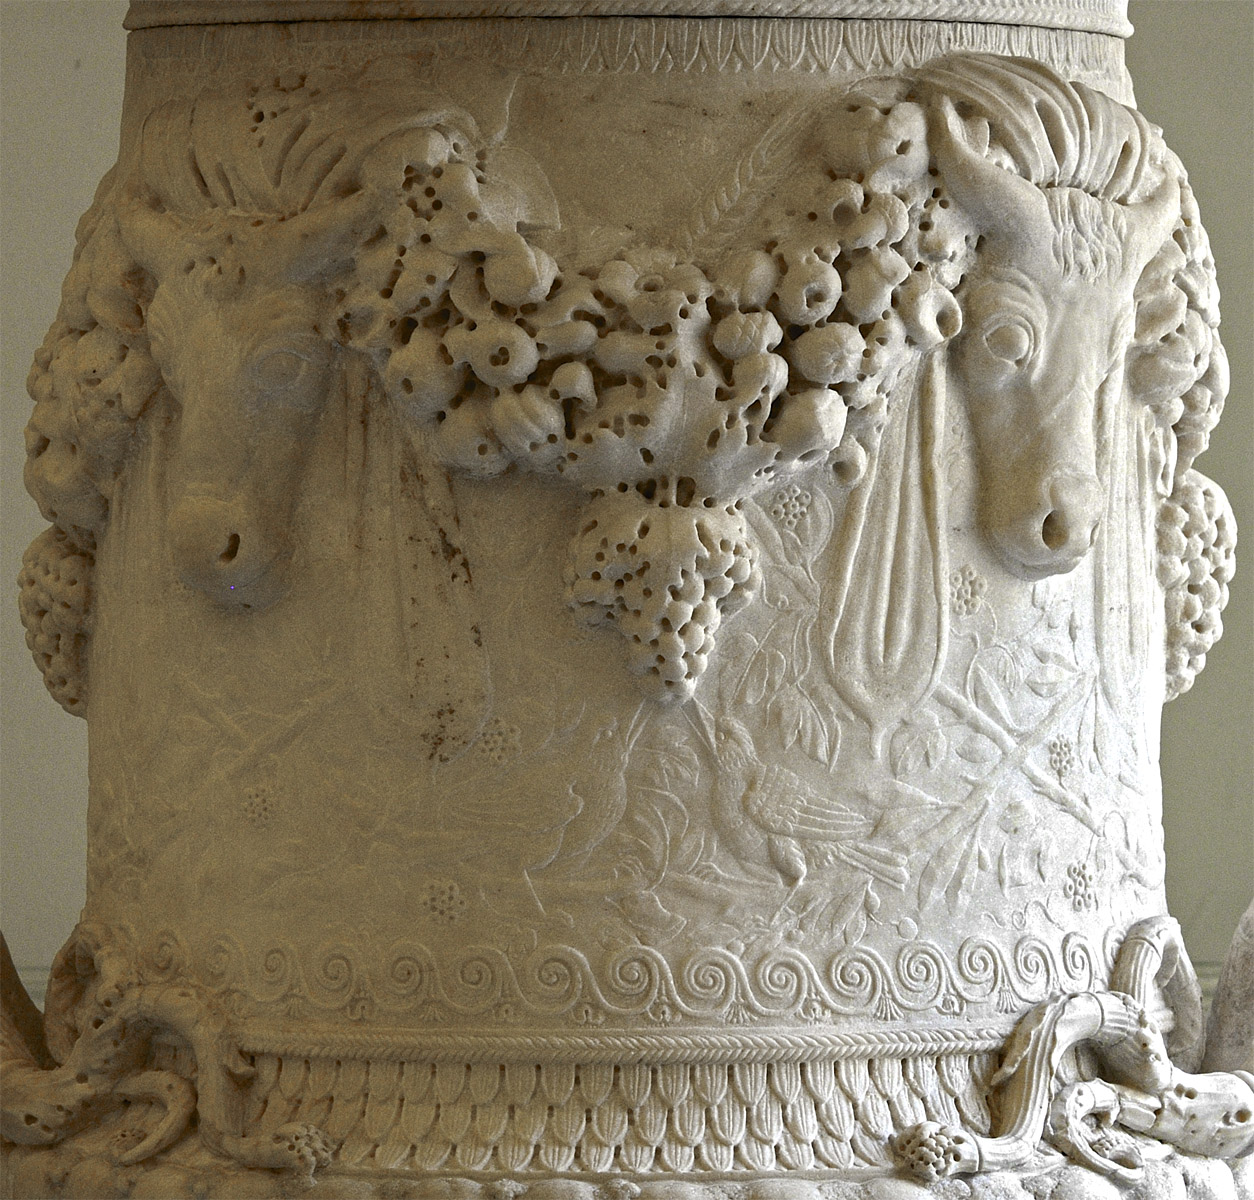 The Piranesi vase (close-up). Marble. Ancient parts — 1st cent. BCE — 1st cent. CE. Composition by G. B. Piranesi — second half of the 18th cent.  Inv. No. A. 121 / Gr-3023. Saint Petersburg, The State Hermitage Museum